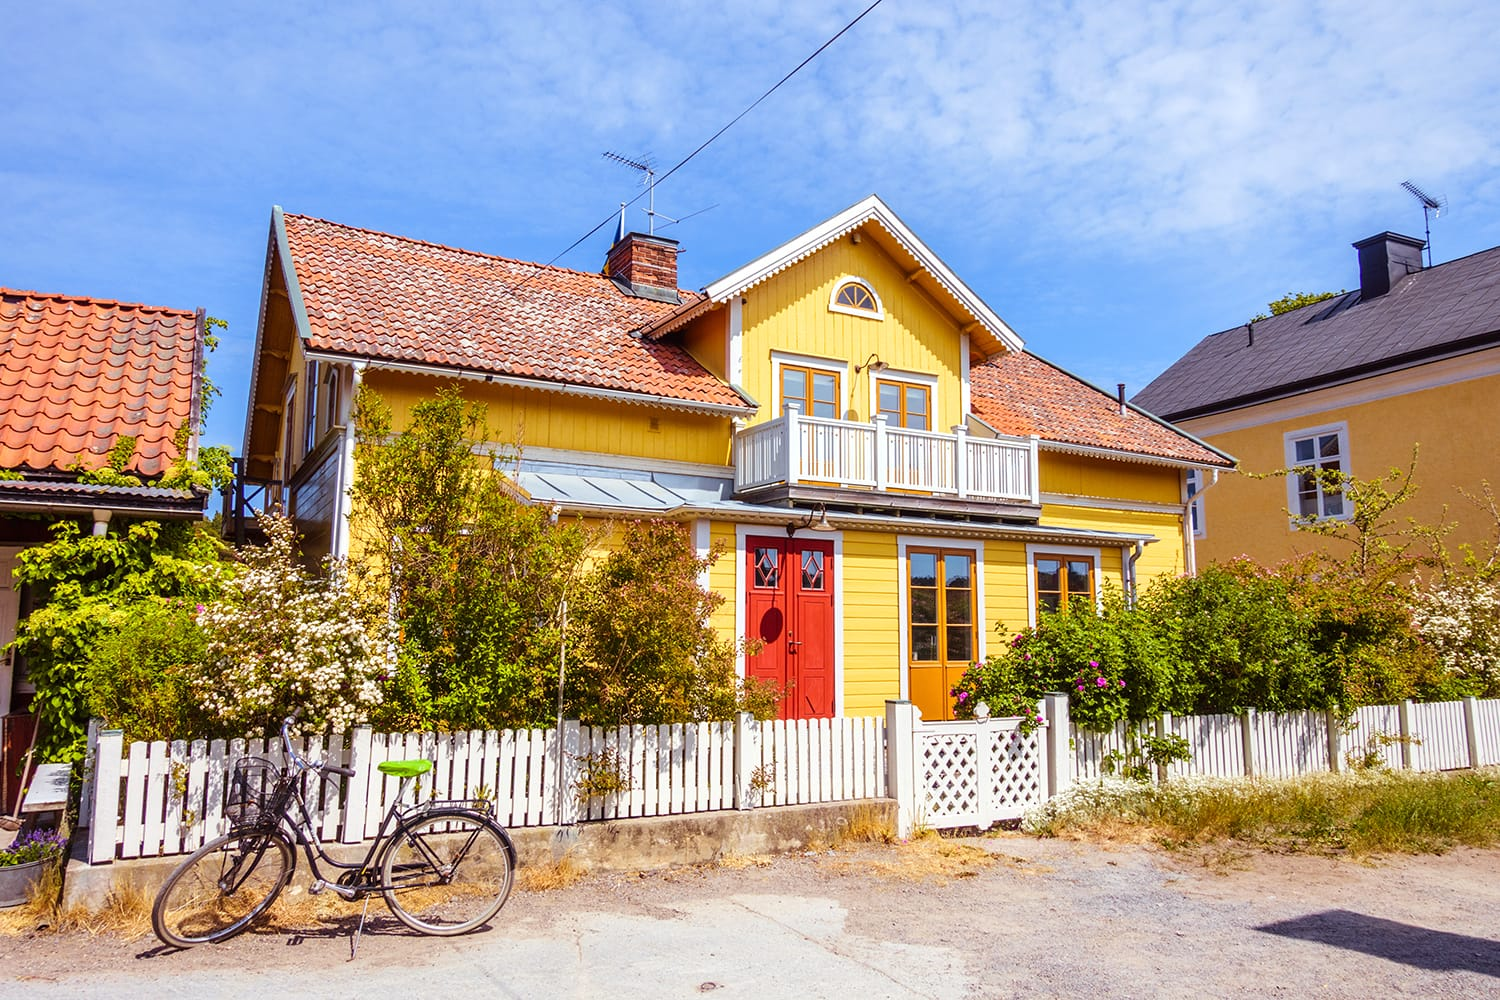 Colourful house on Sandhamn island, Sweden